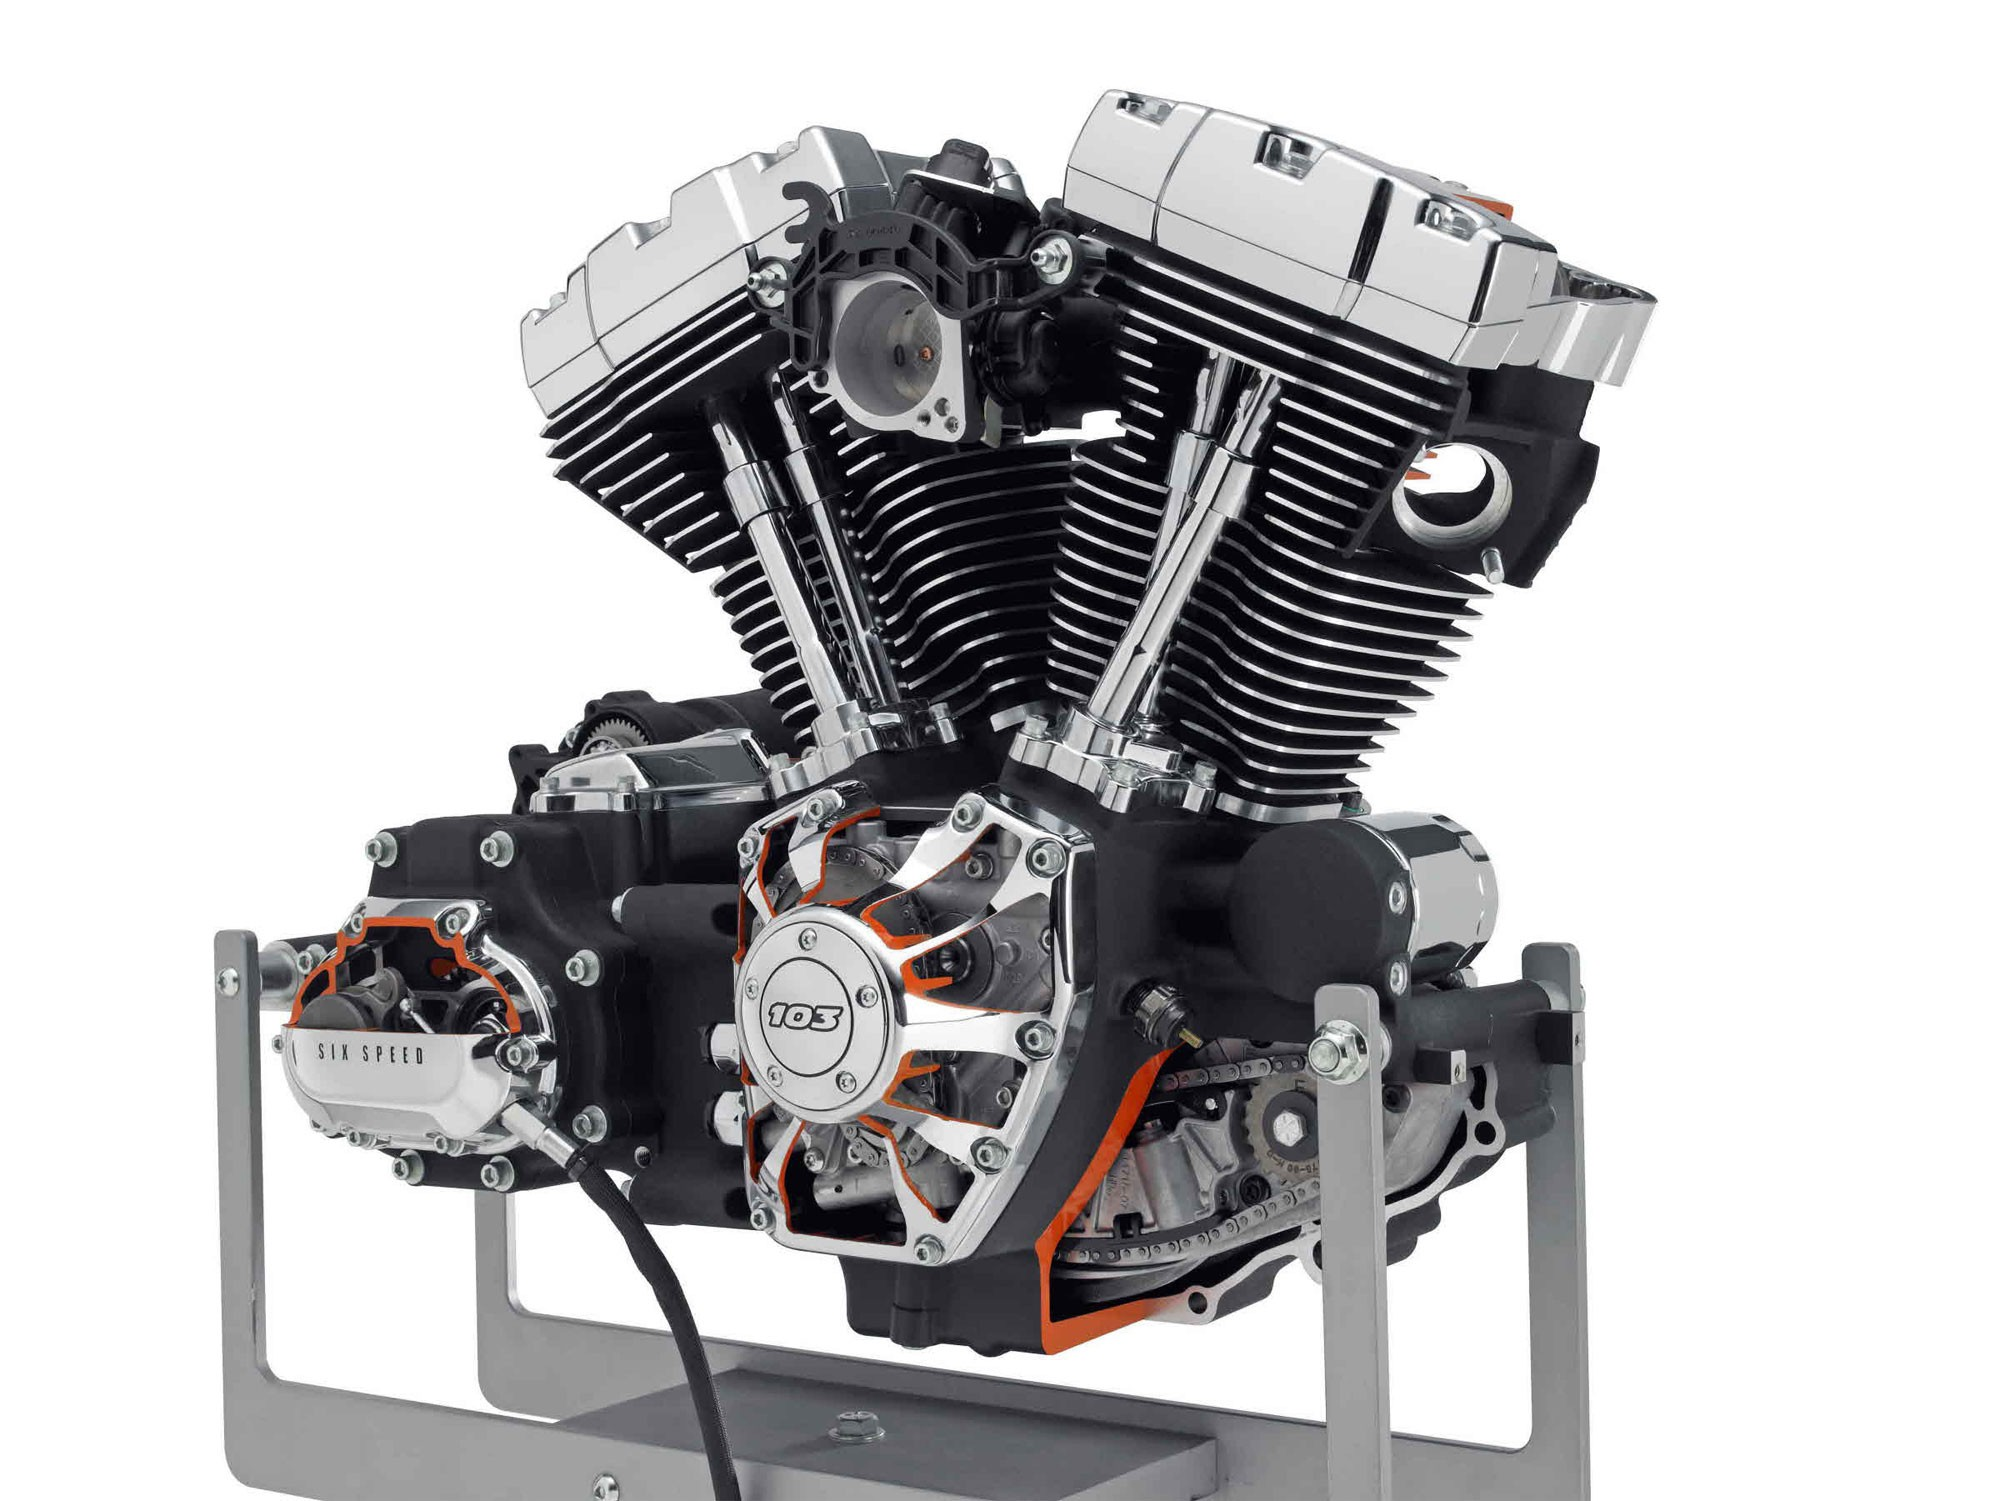 Dual Overhead Cam Engine Diagram How To Build Your Own Sheetmetal Hot Rod Fresh Harley Davidson Of